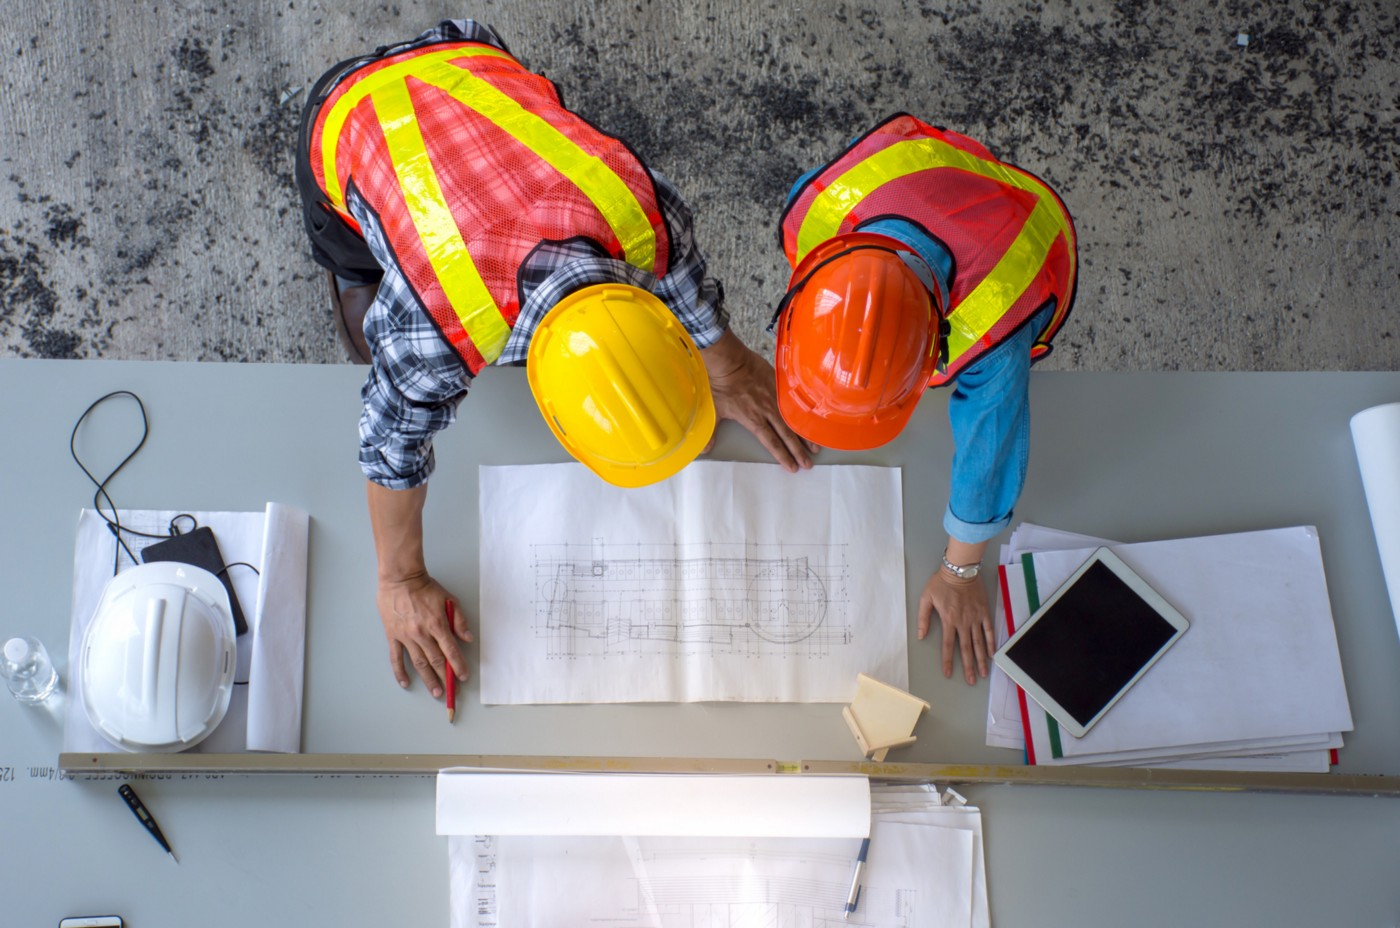 Two engineers with hard hats and safety vests on are looking at a blueprint that's spread out on a table.